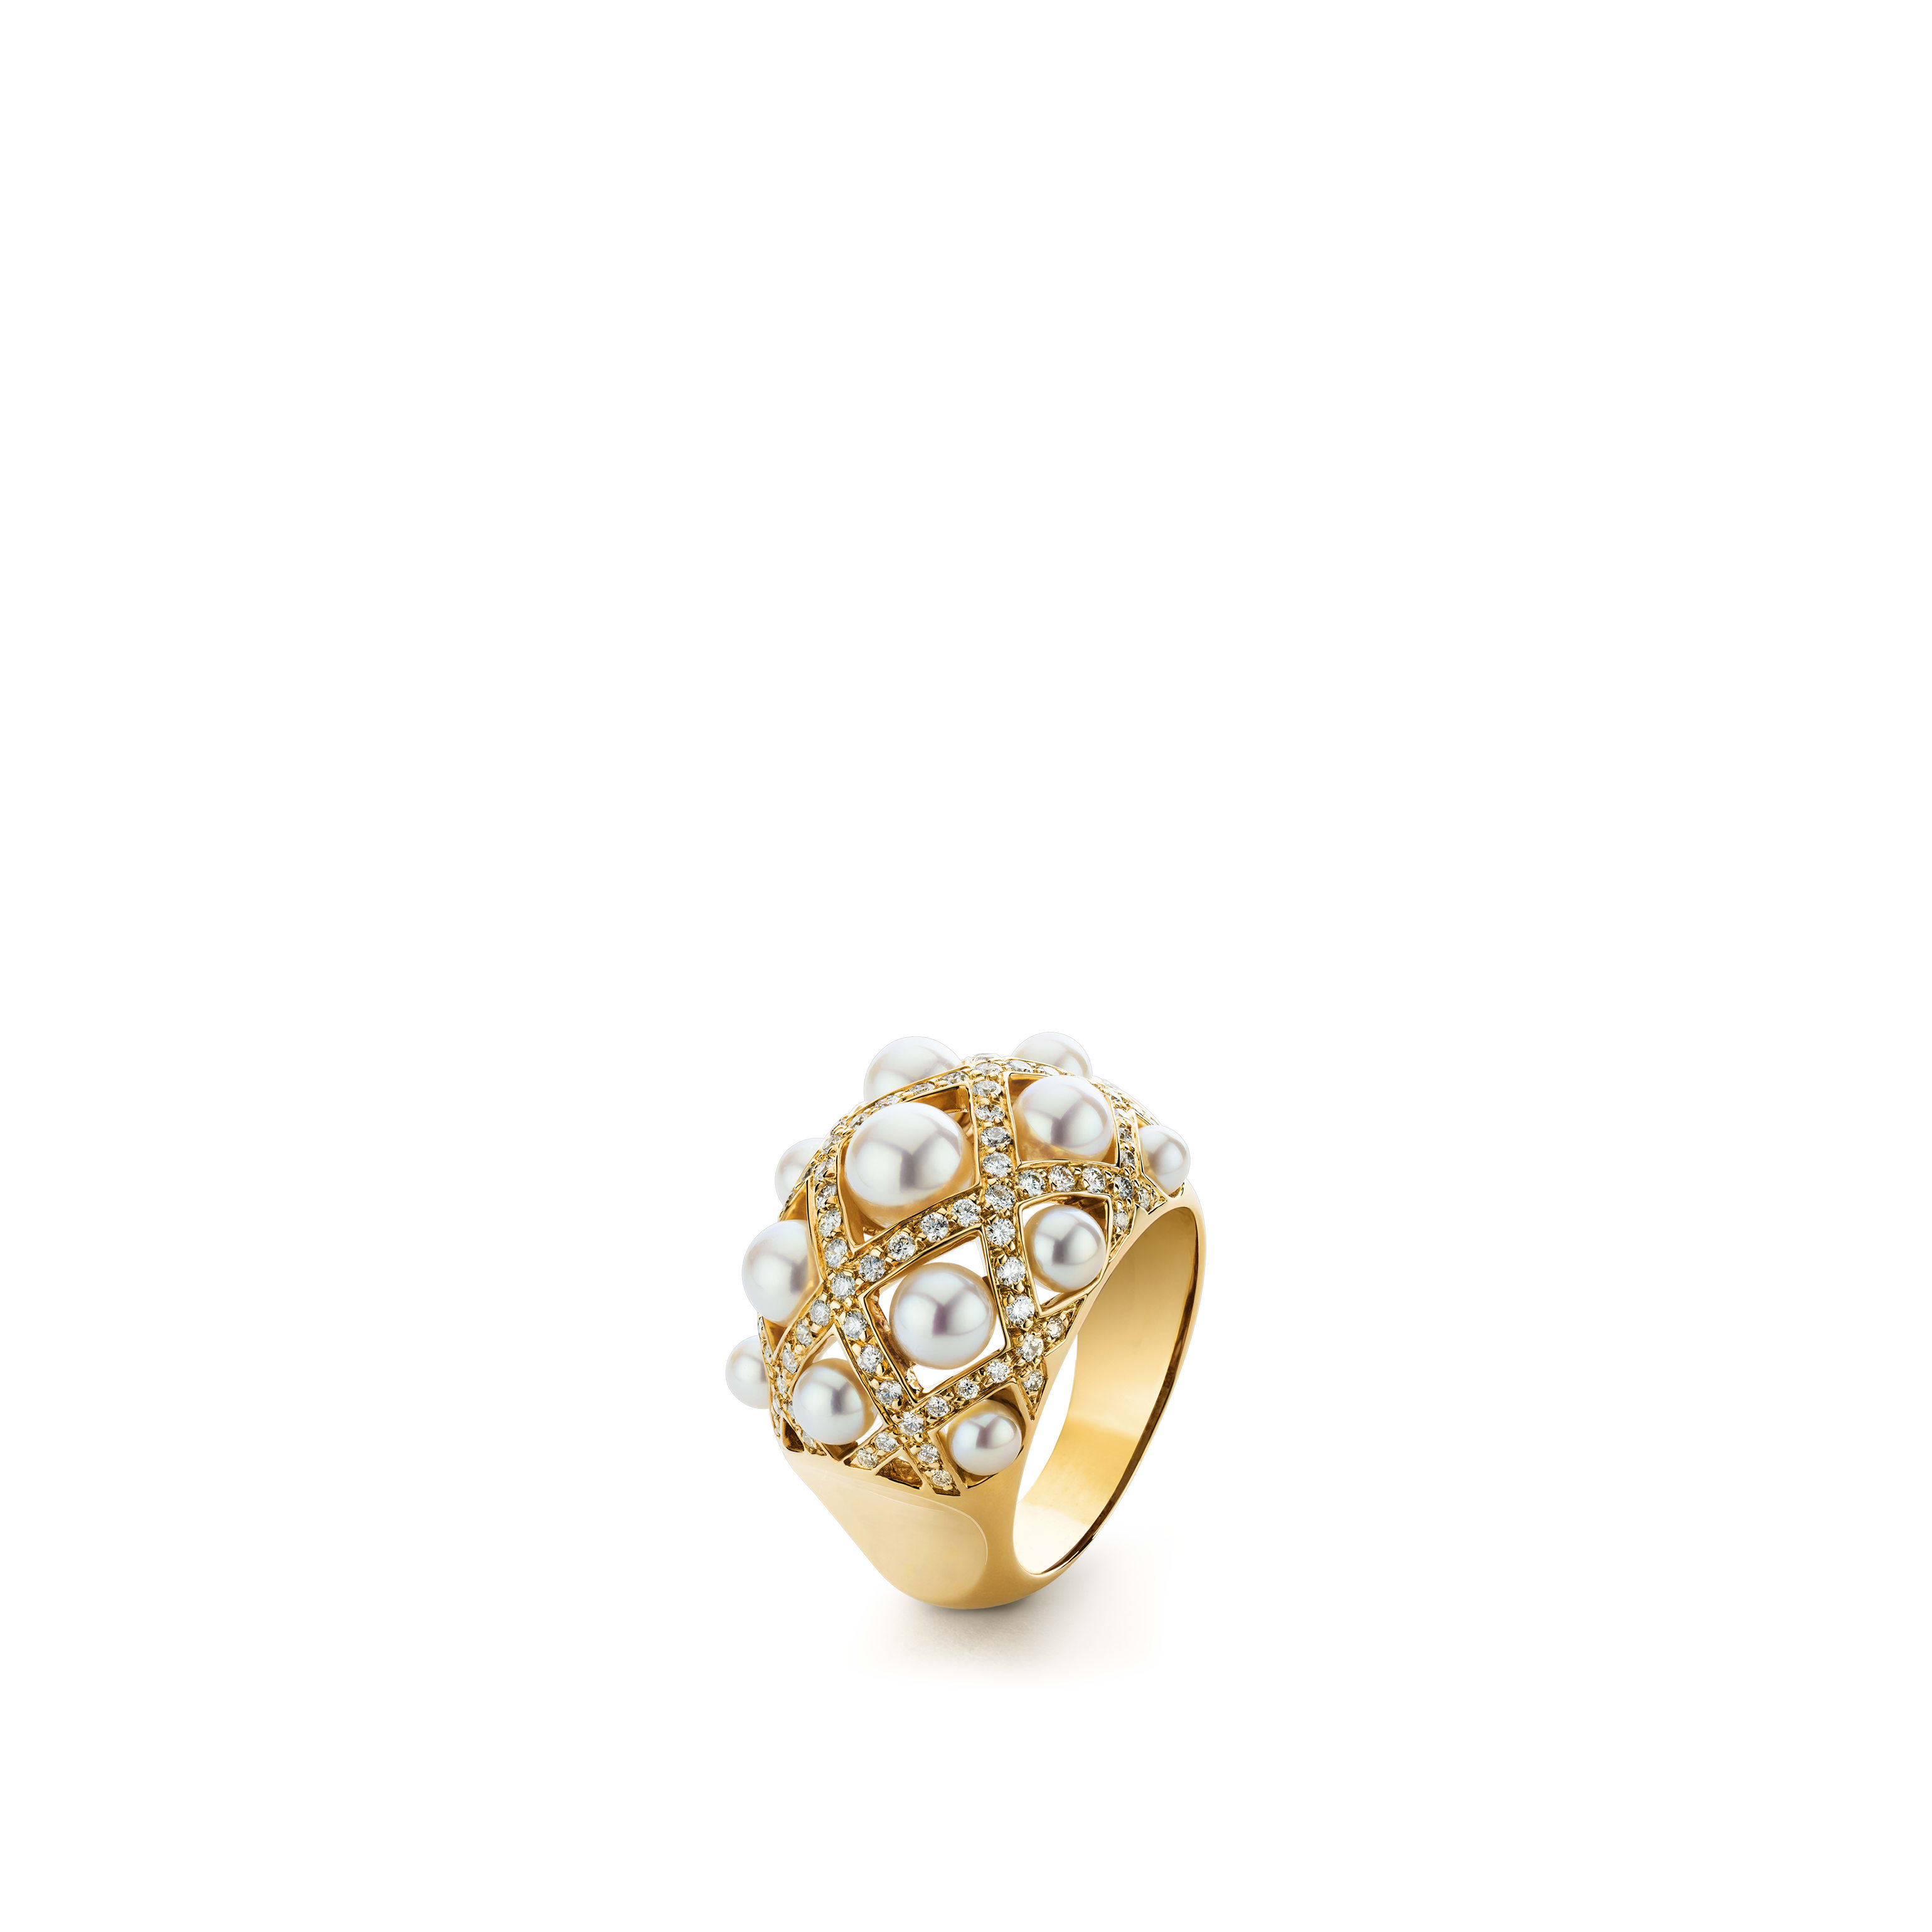 Perles Matelassé ring - Medium version, 18K yellow gold, diamonds, cultured pearls - CHANEL - Default view - see standard sized version